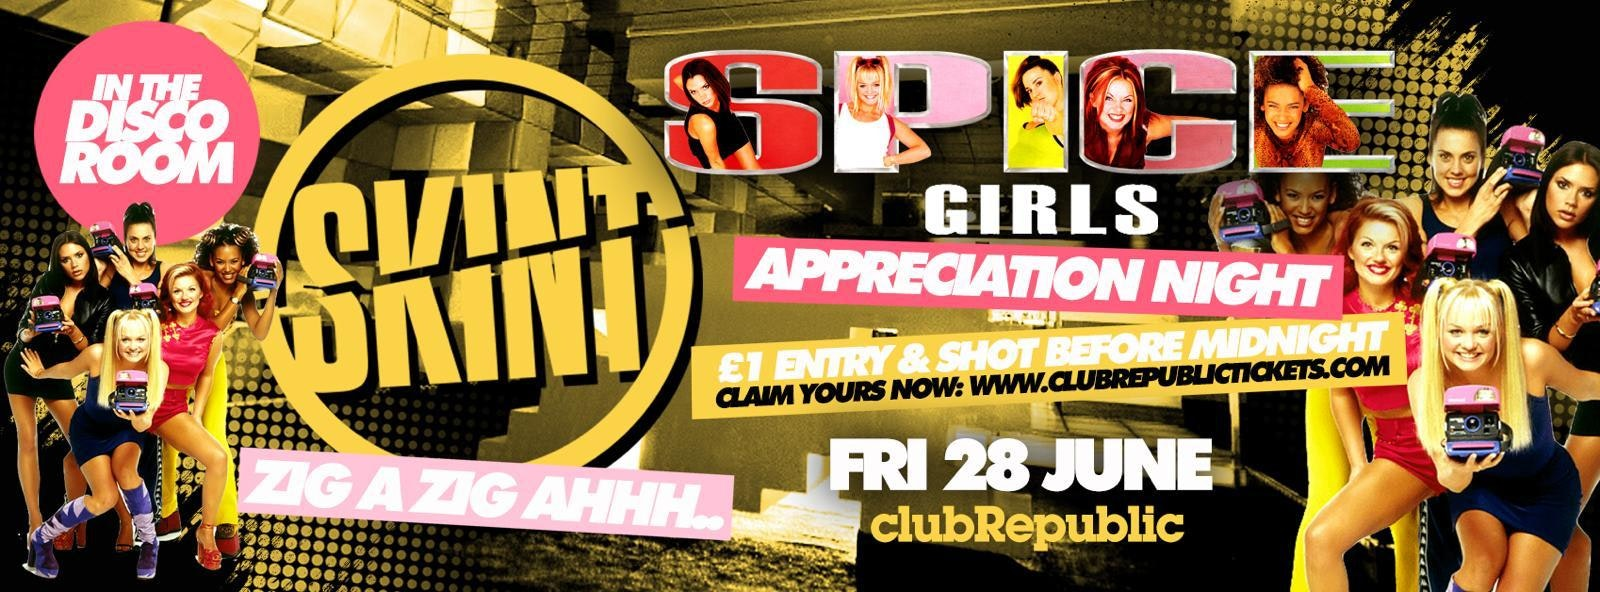 ★ Skint Fridays ★ Spice Girls Appreciation Night! ★ £1 ENTRY + SHOT on Arrival ★ Club Republic